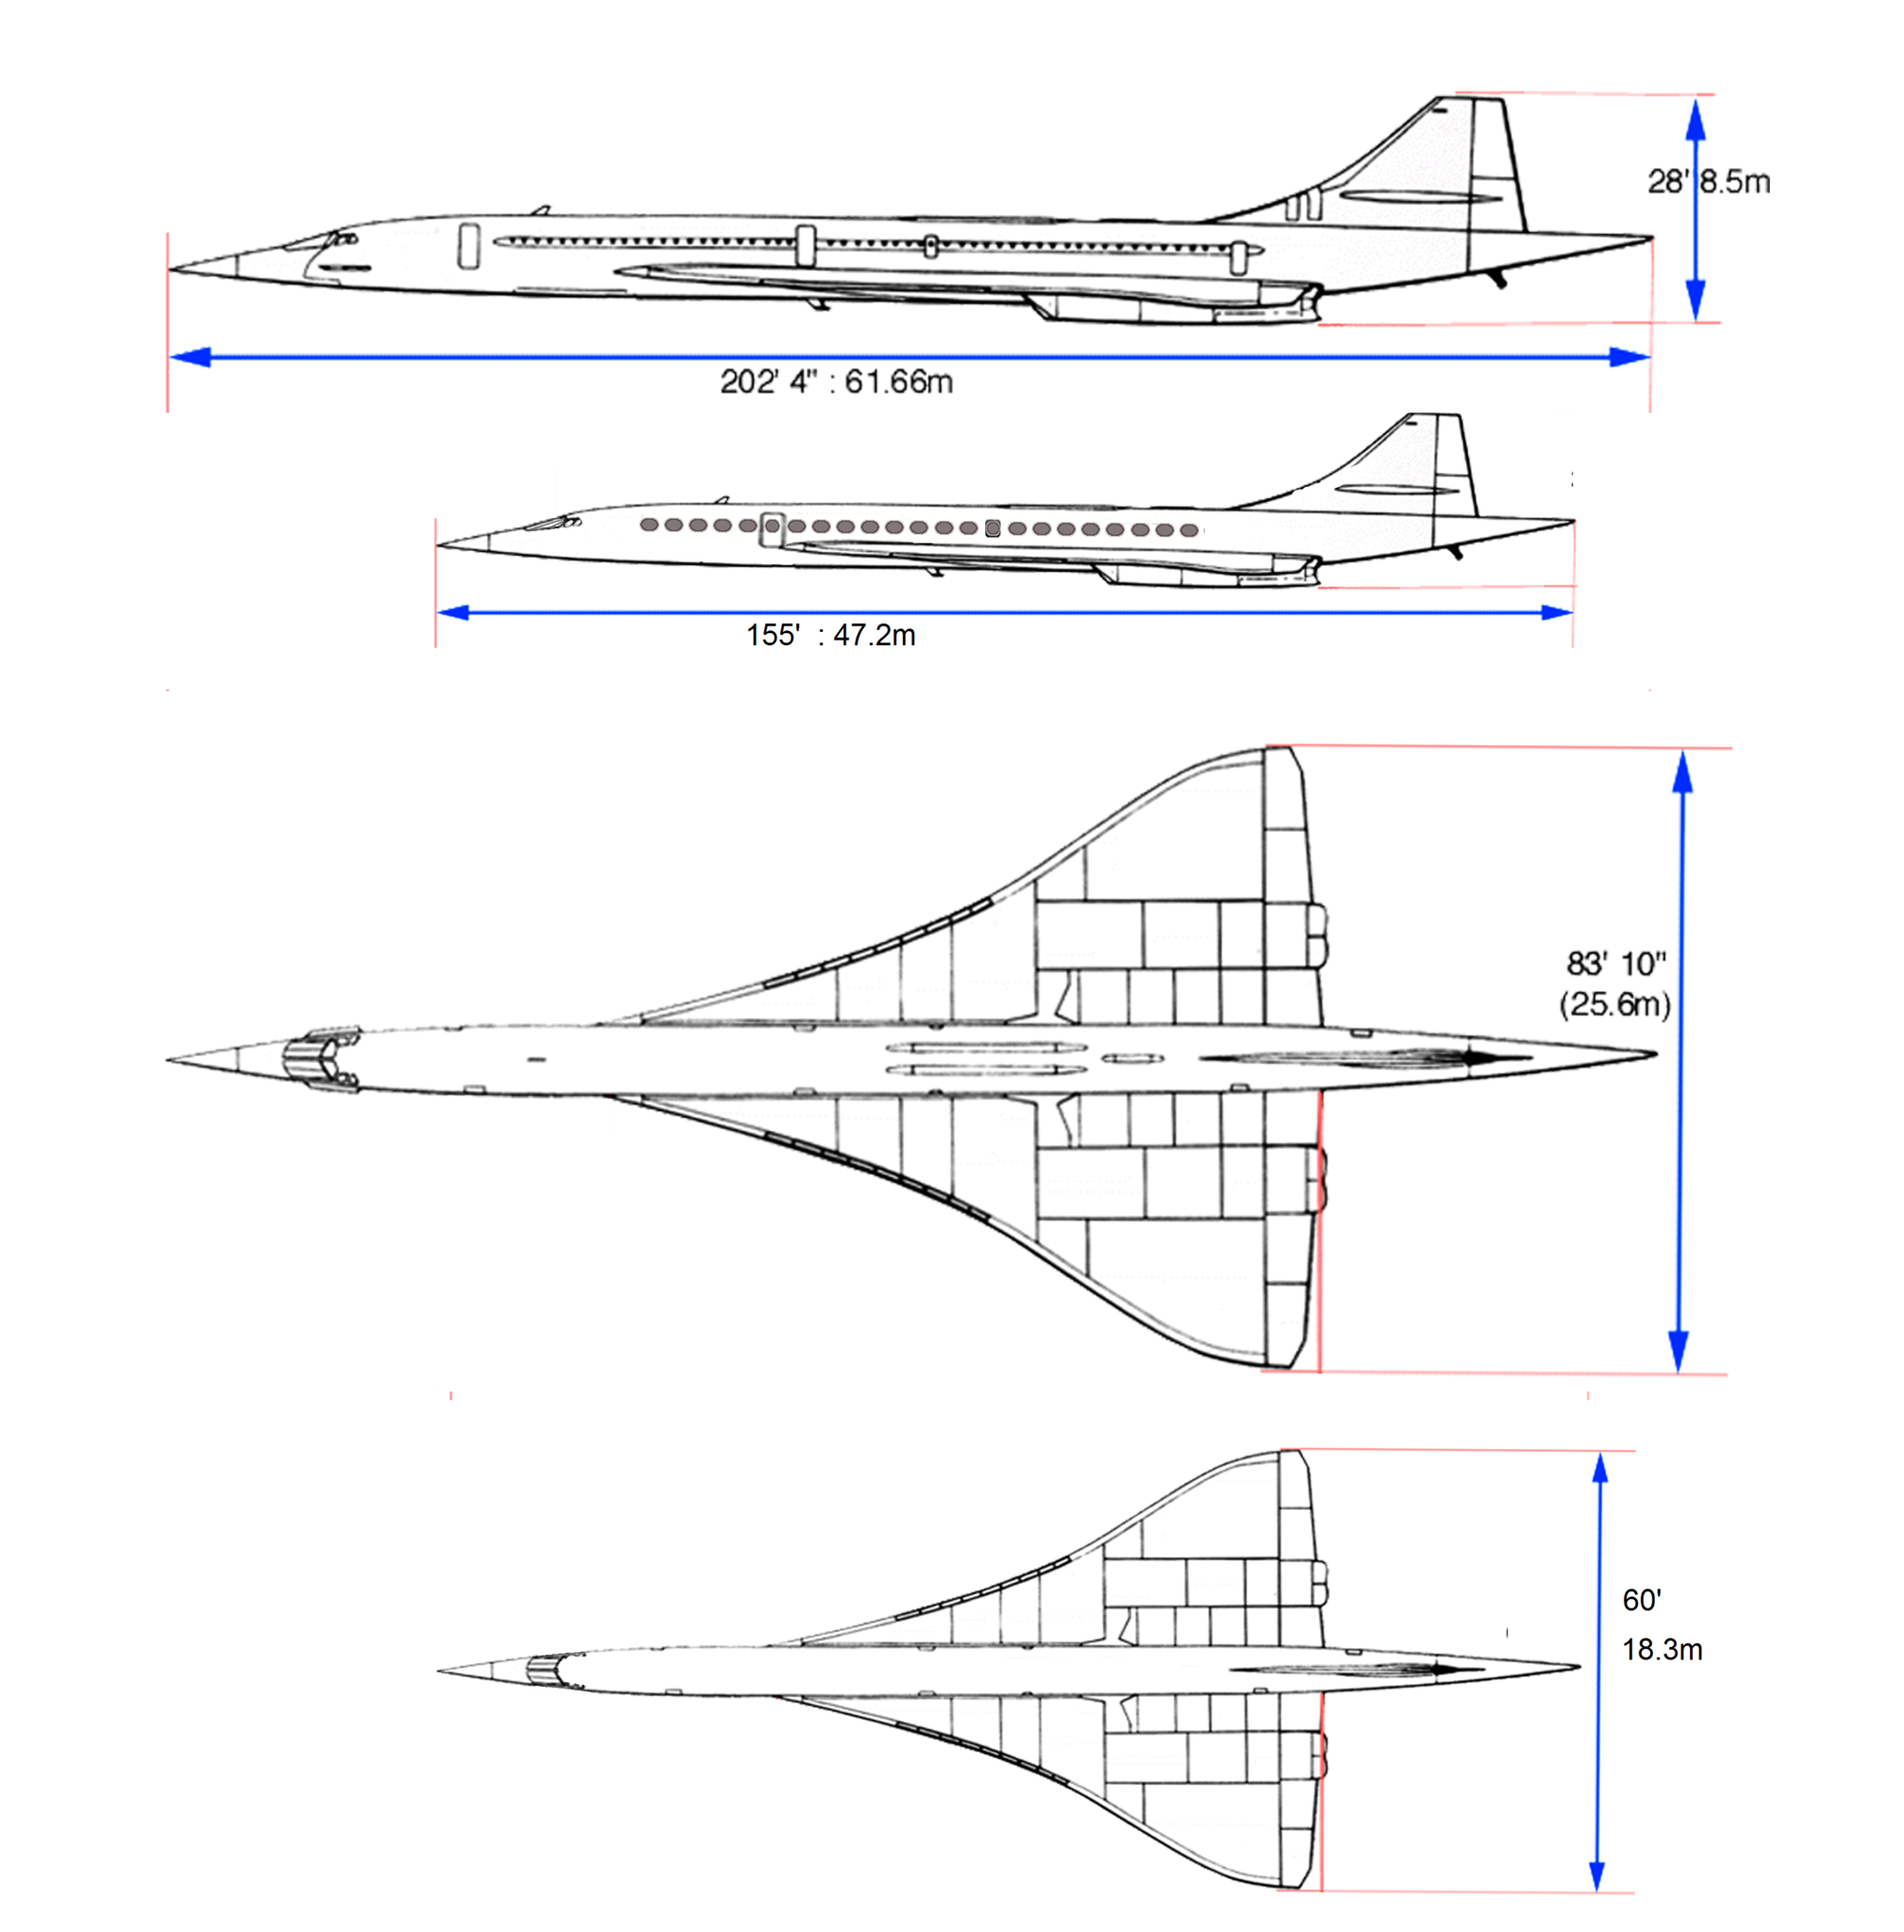 Will Boom Succeed Where Concorde Failed Leeham News And Comment 747 Jet Engine Diagram Turbojet Drawing 2016 11 16